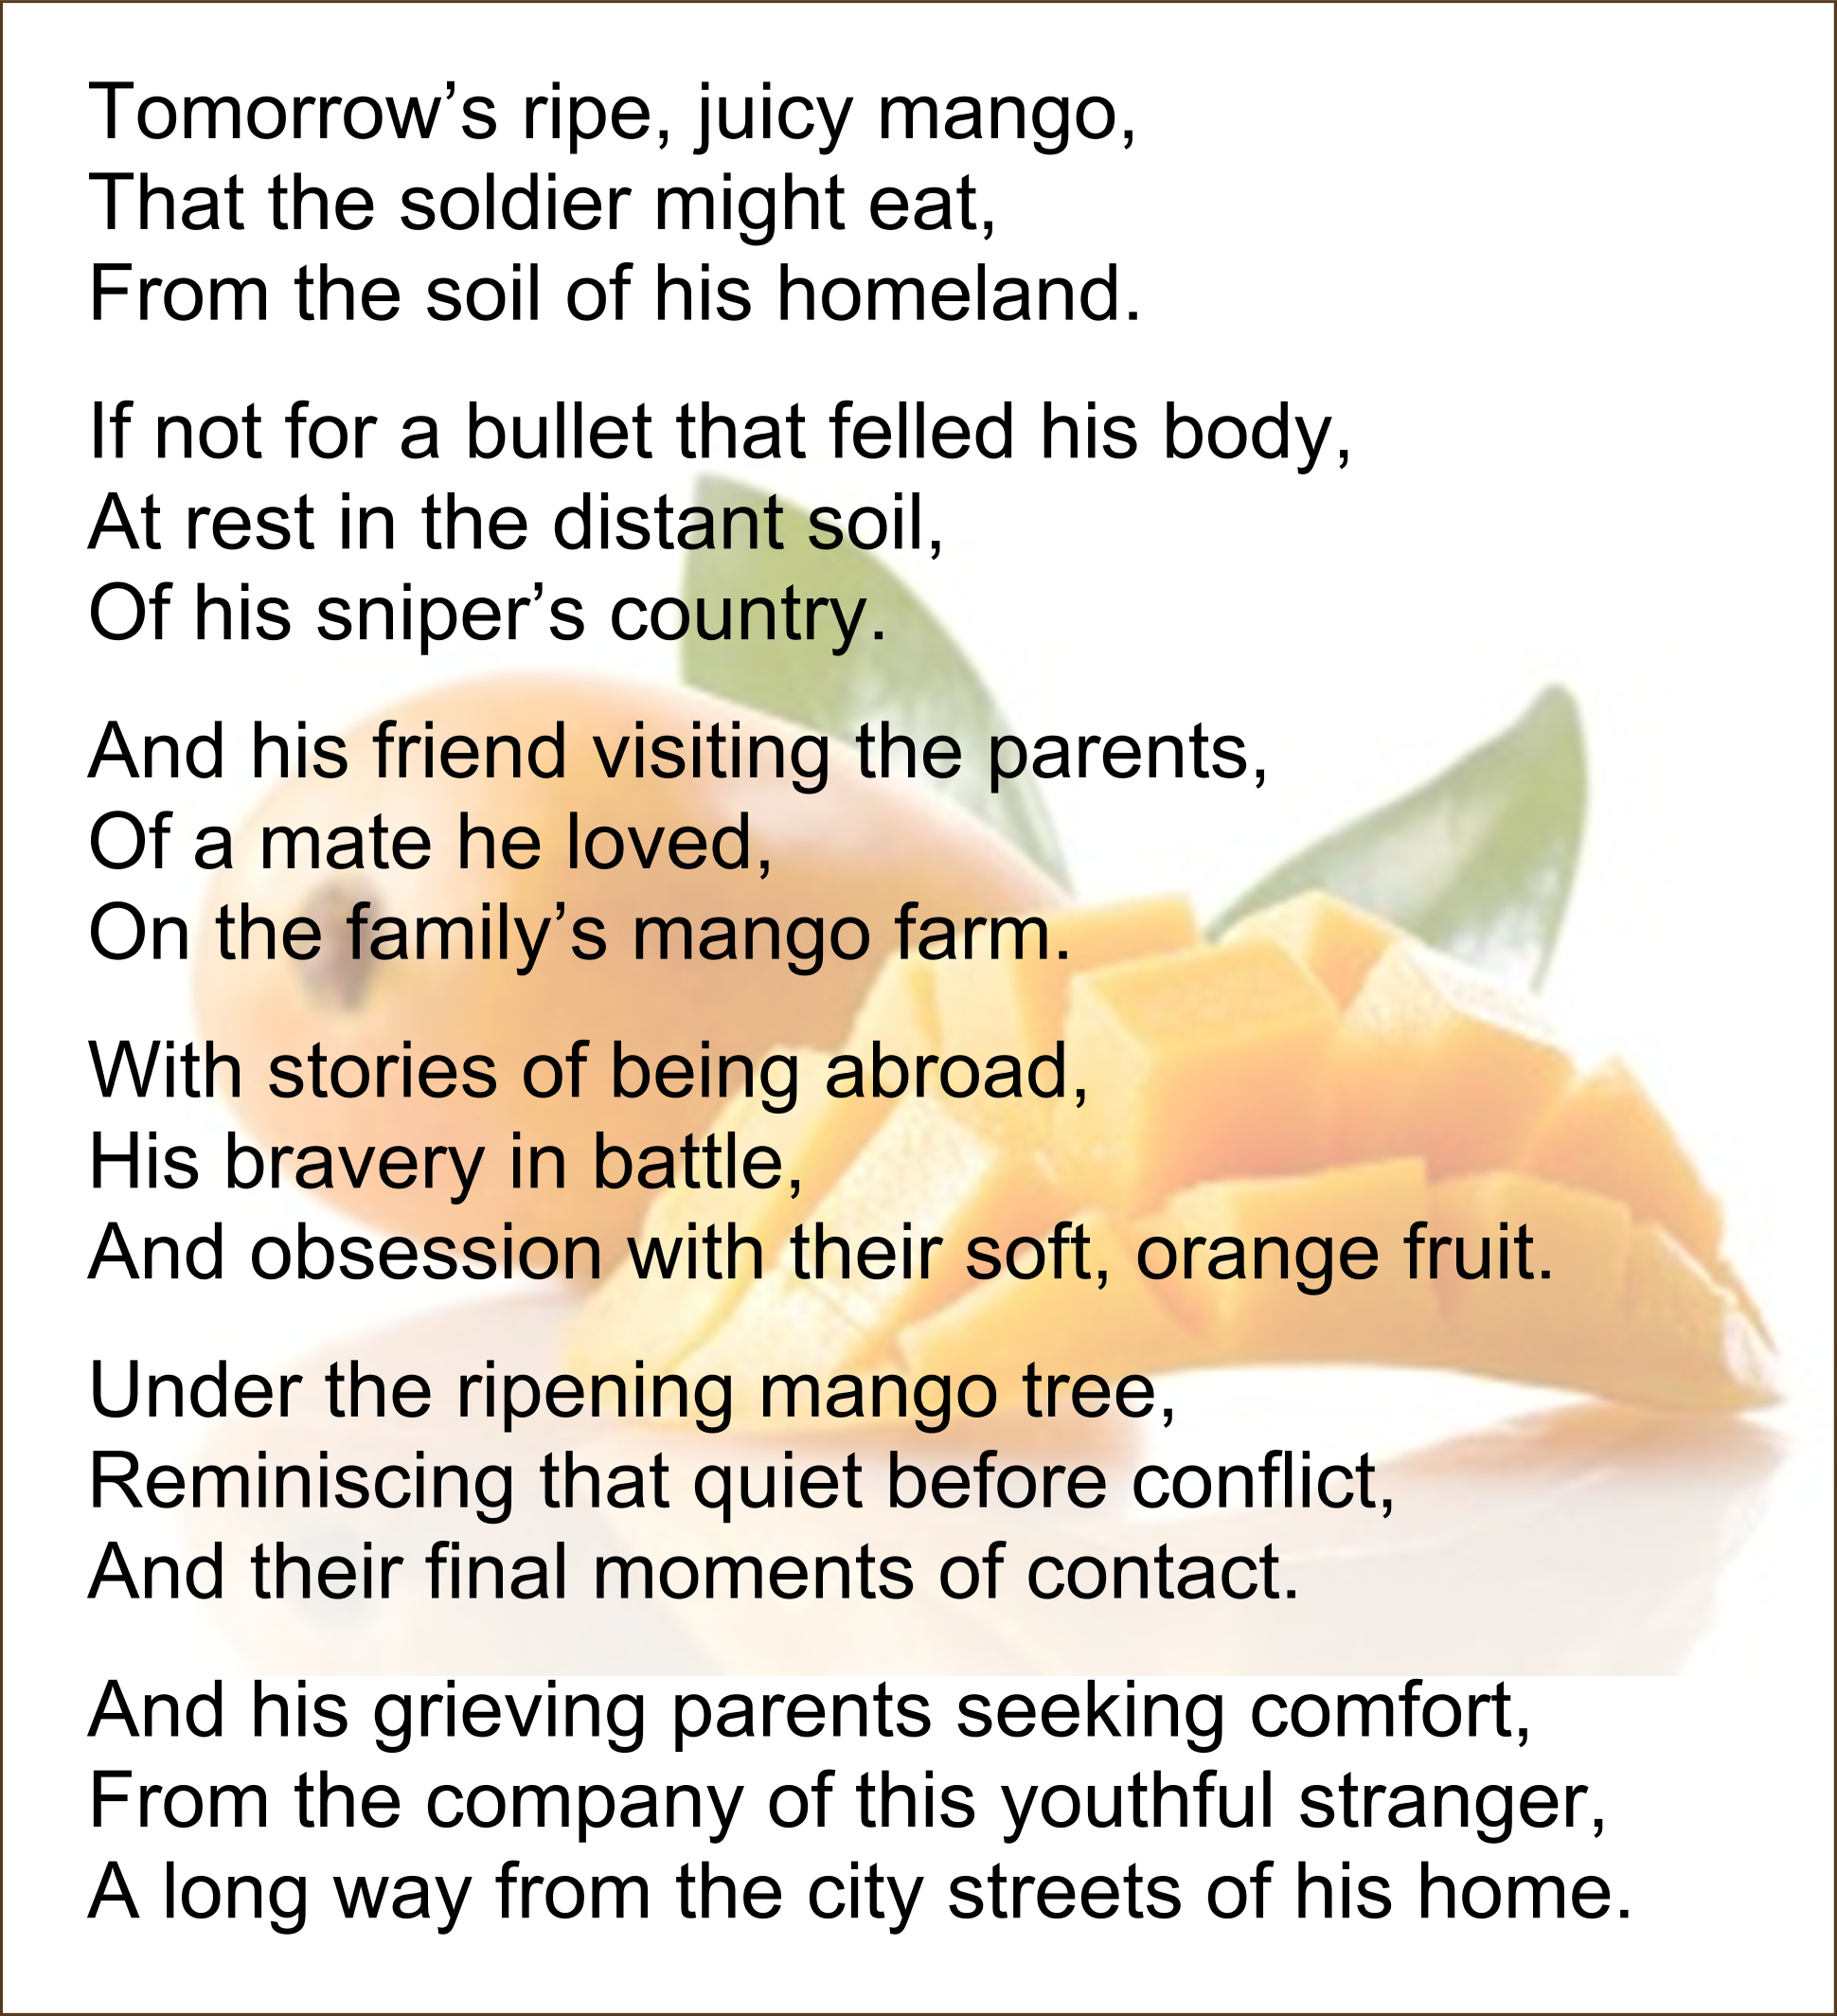 Poem over picture of a mango